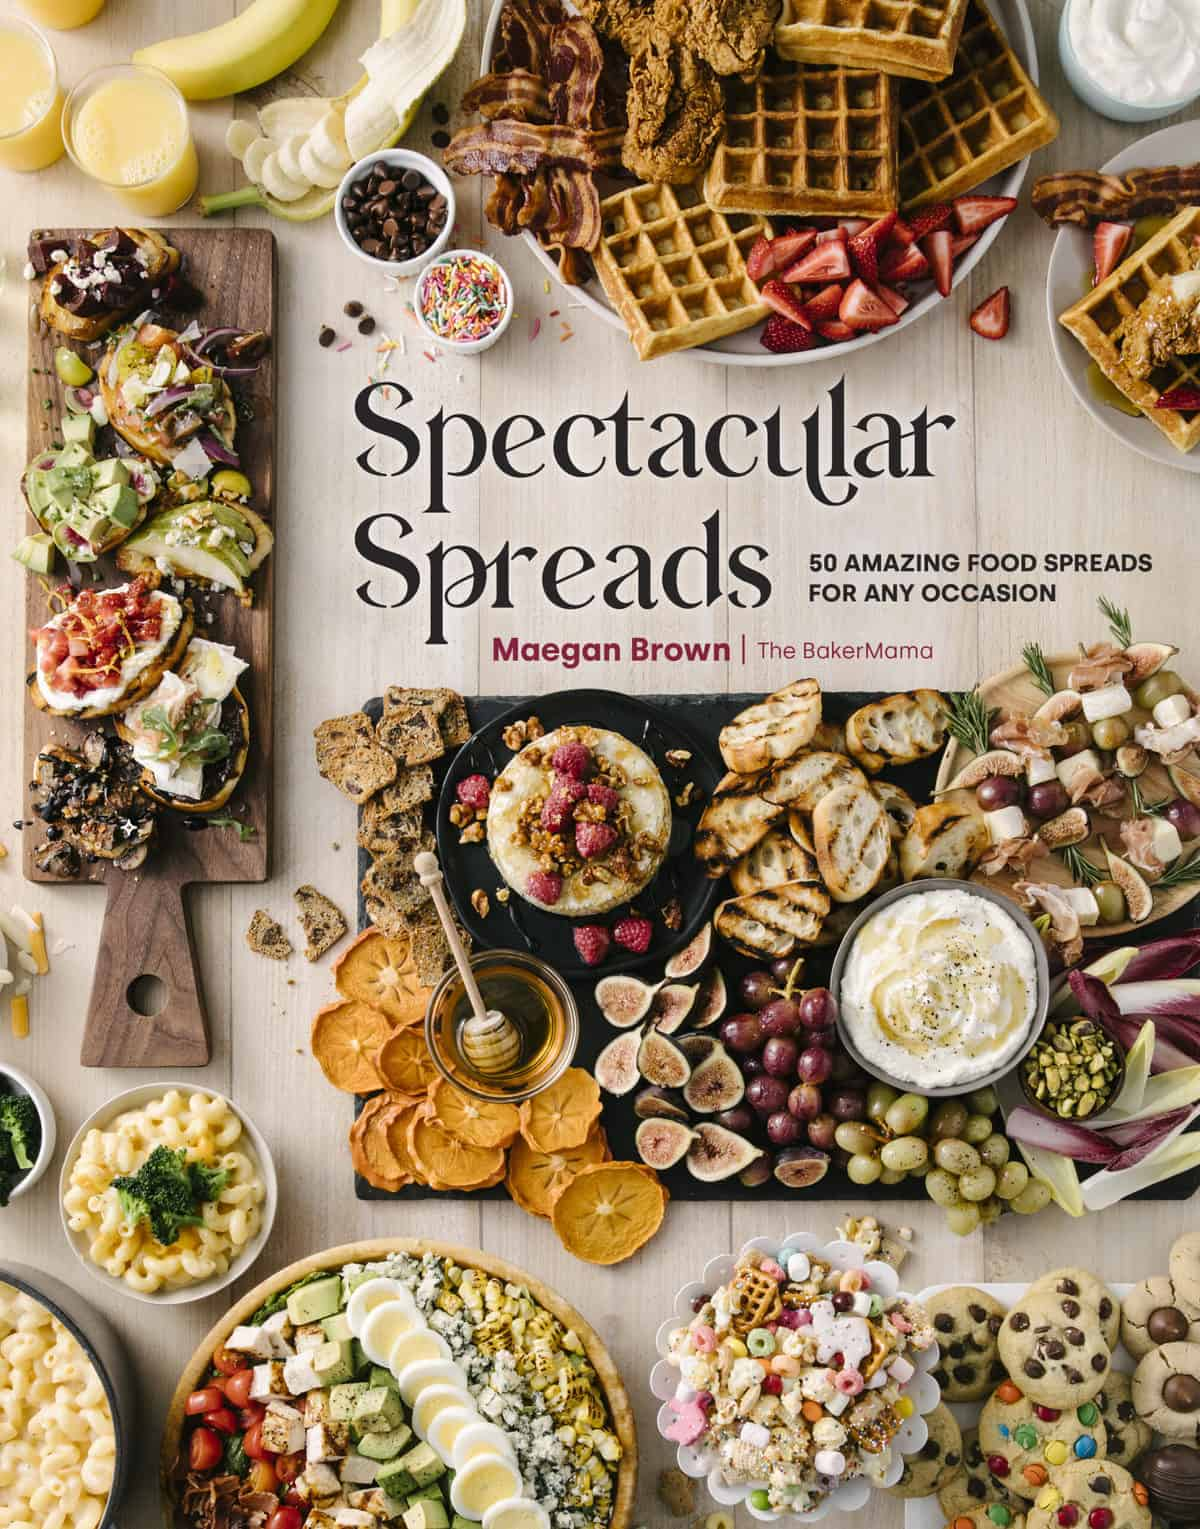 Spectacular Spreads cookbook by The BakerMama